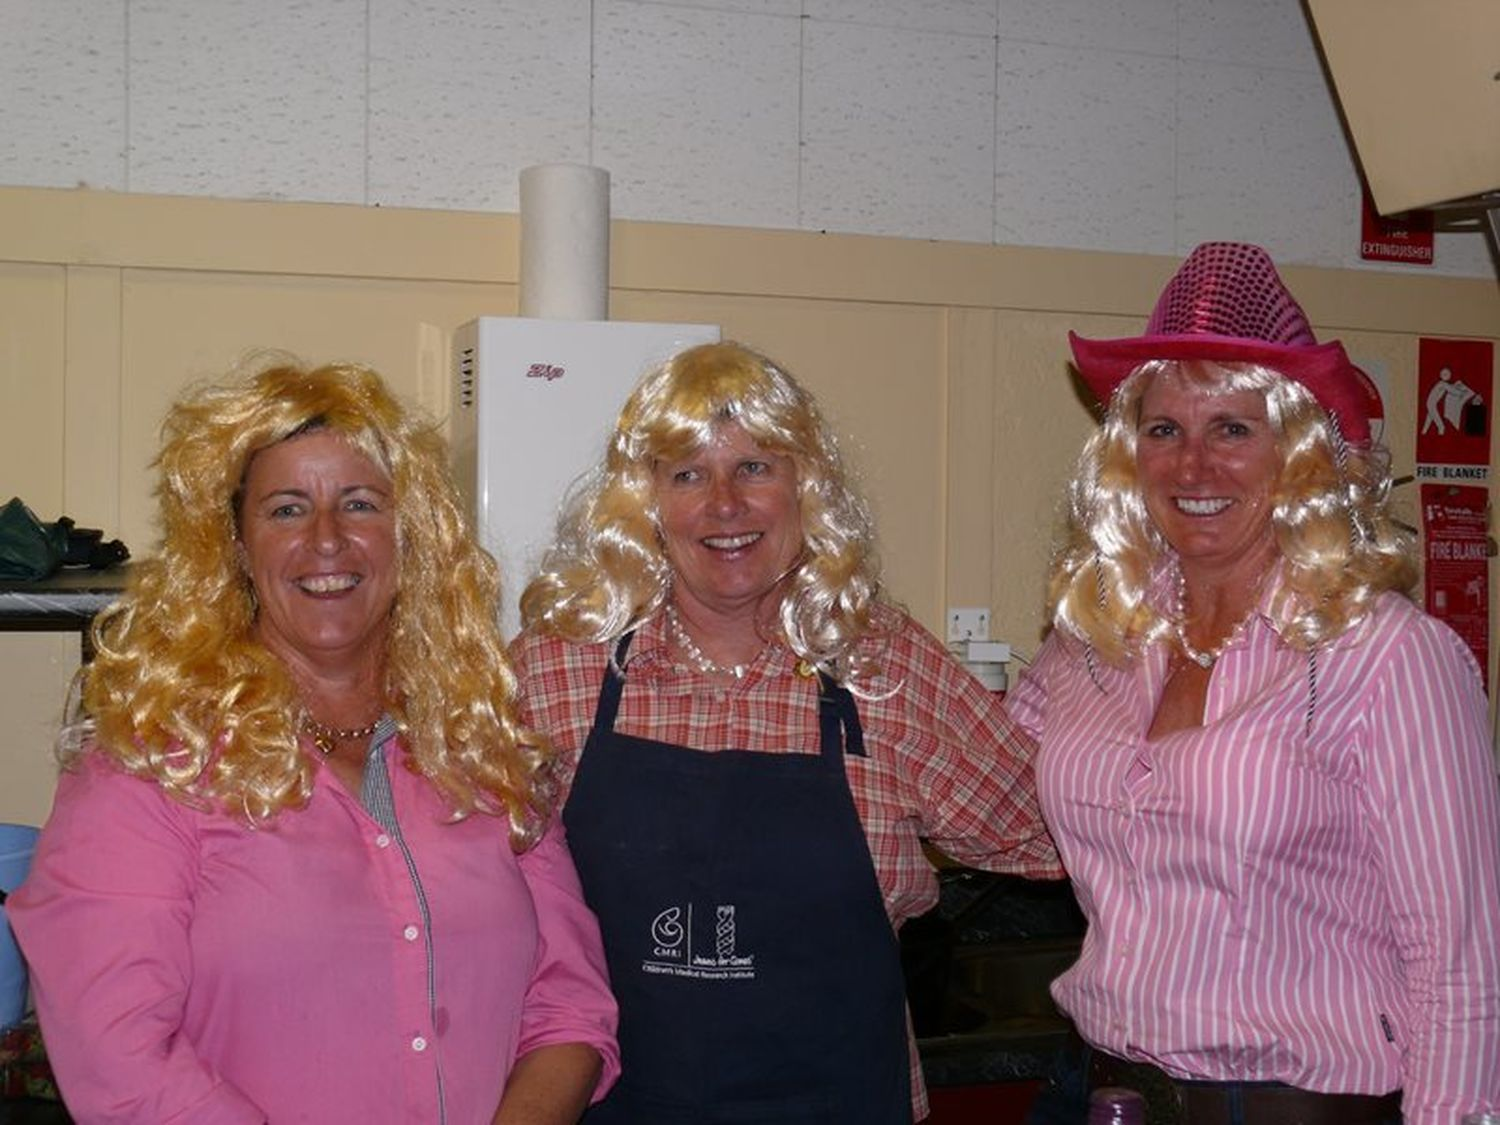 Quirindi Committee event - Dolly waitresses